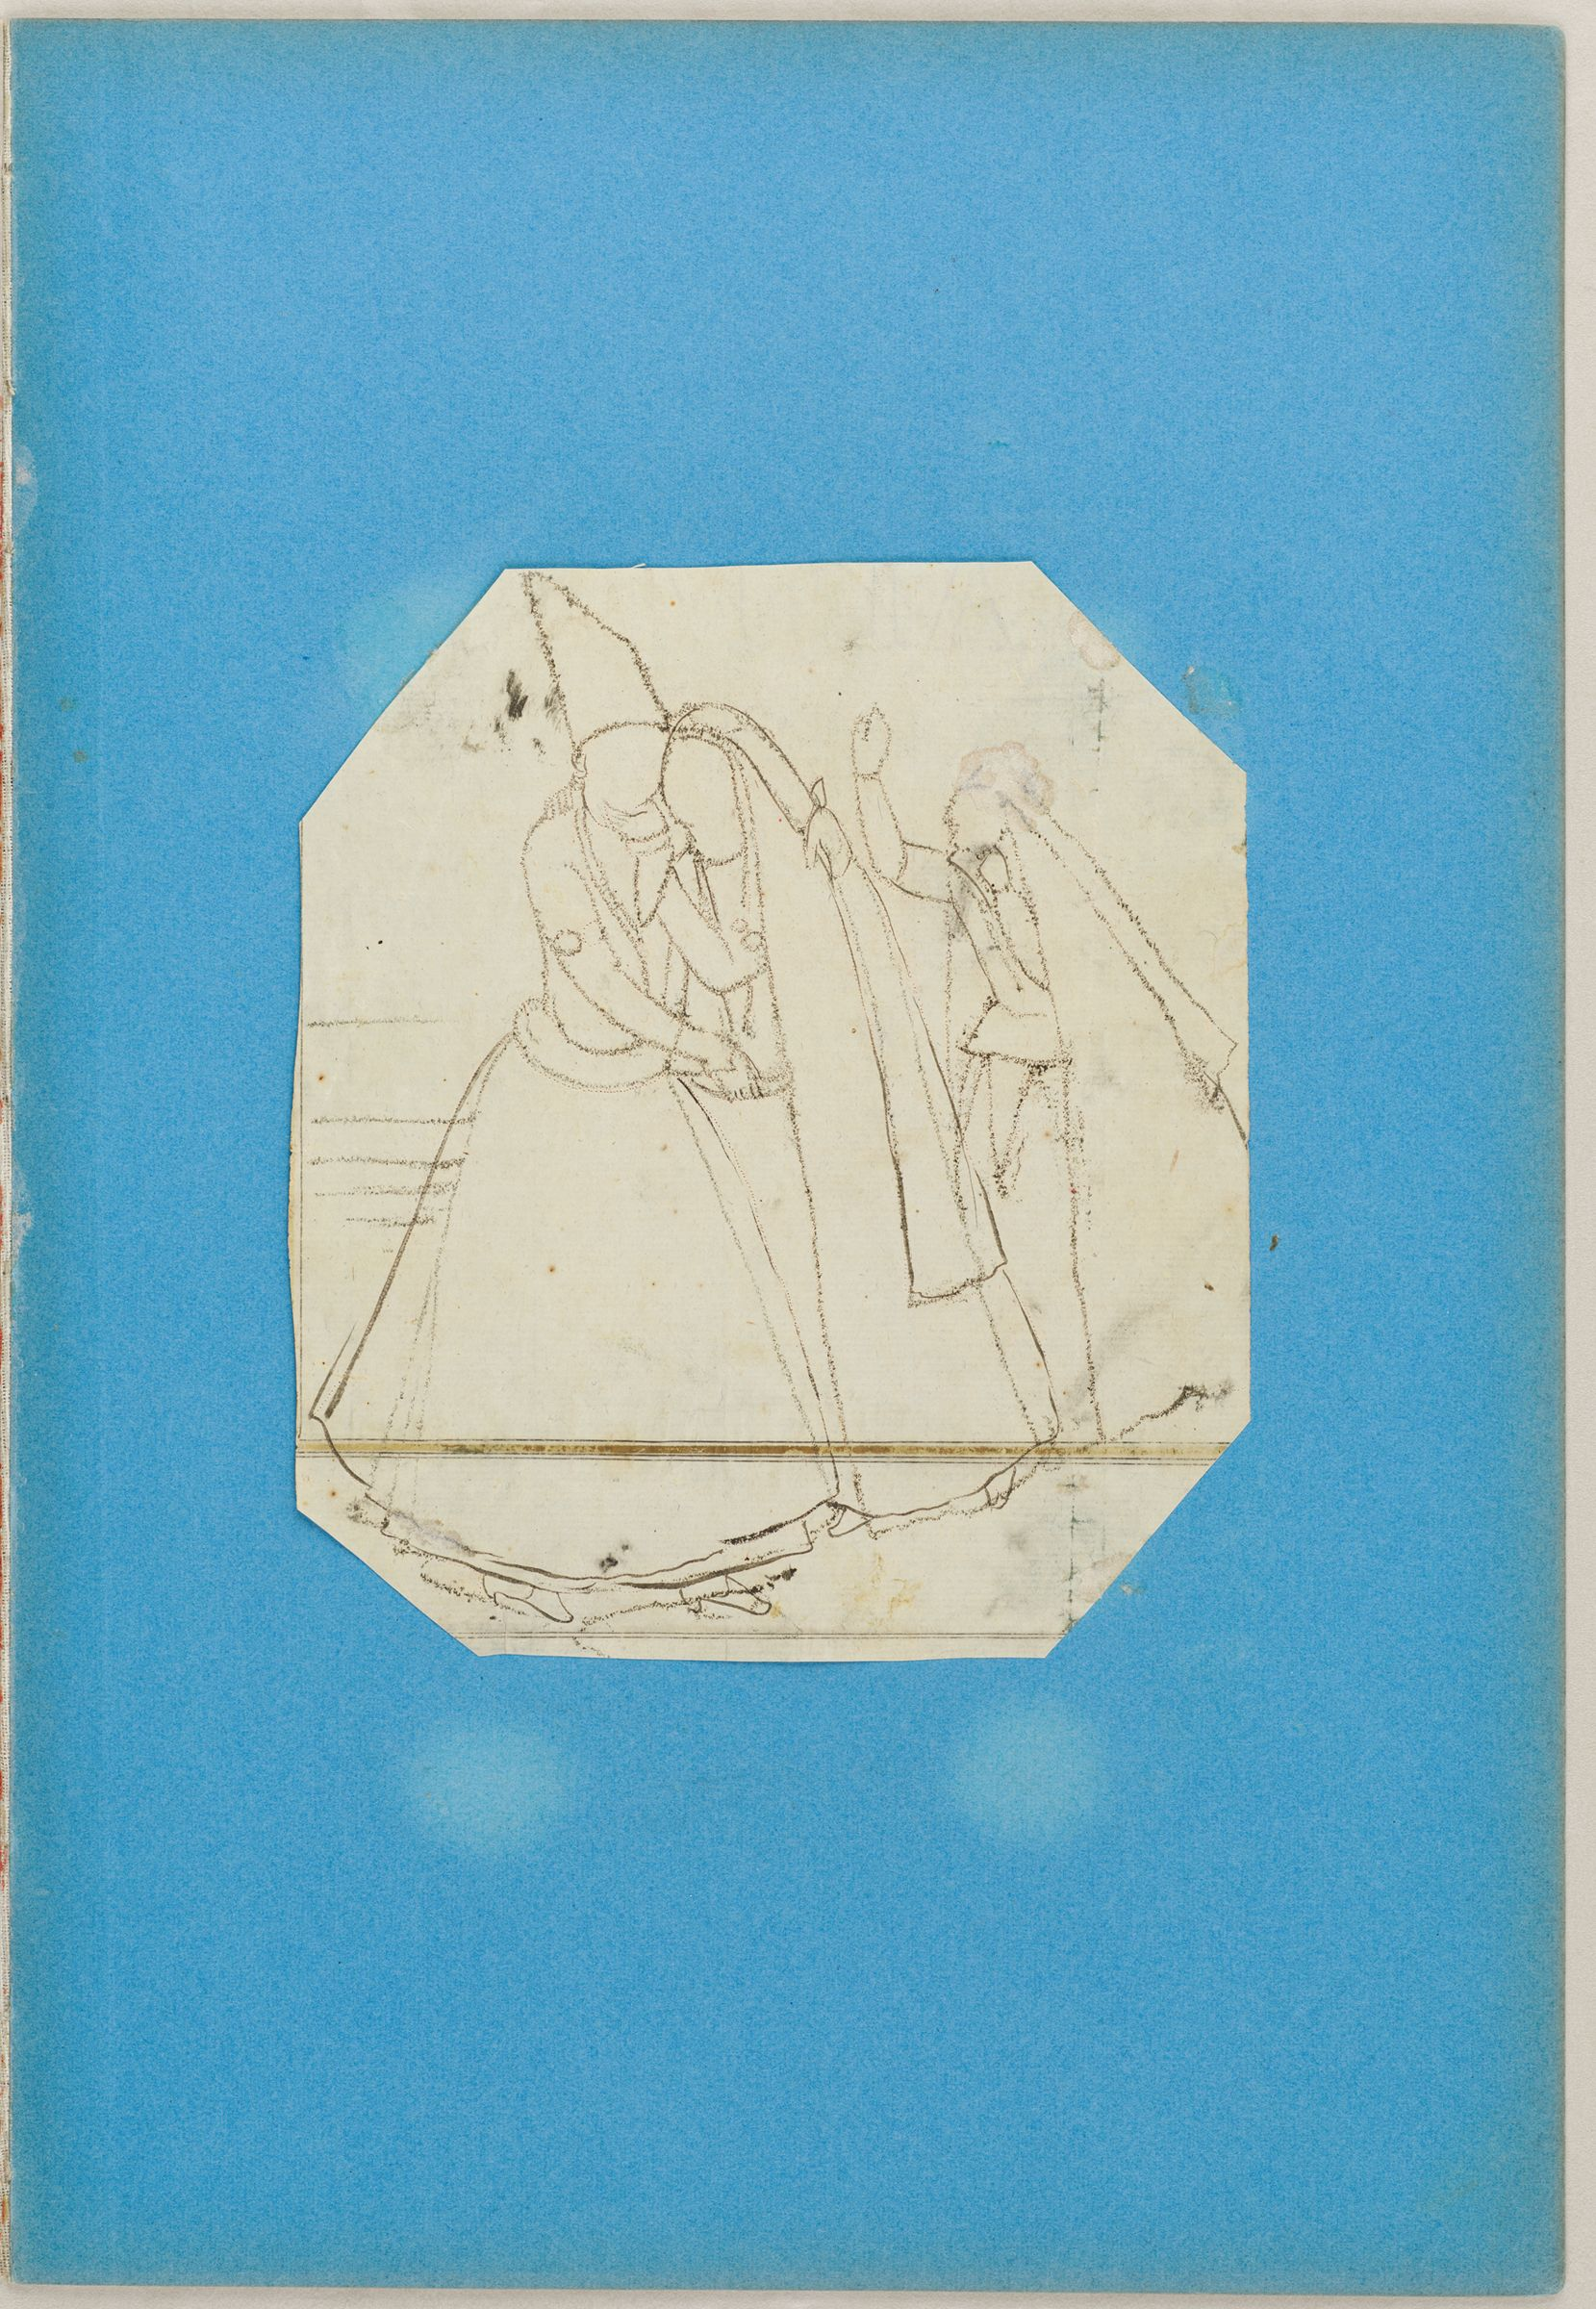 Folio 4 From An Album Of Drawings And Paintings: Dancer With Finger-Cymbals (Recto); Embracing Couple Approached By A Woman (Verso)